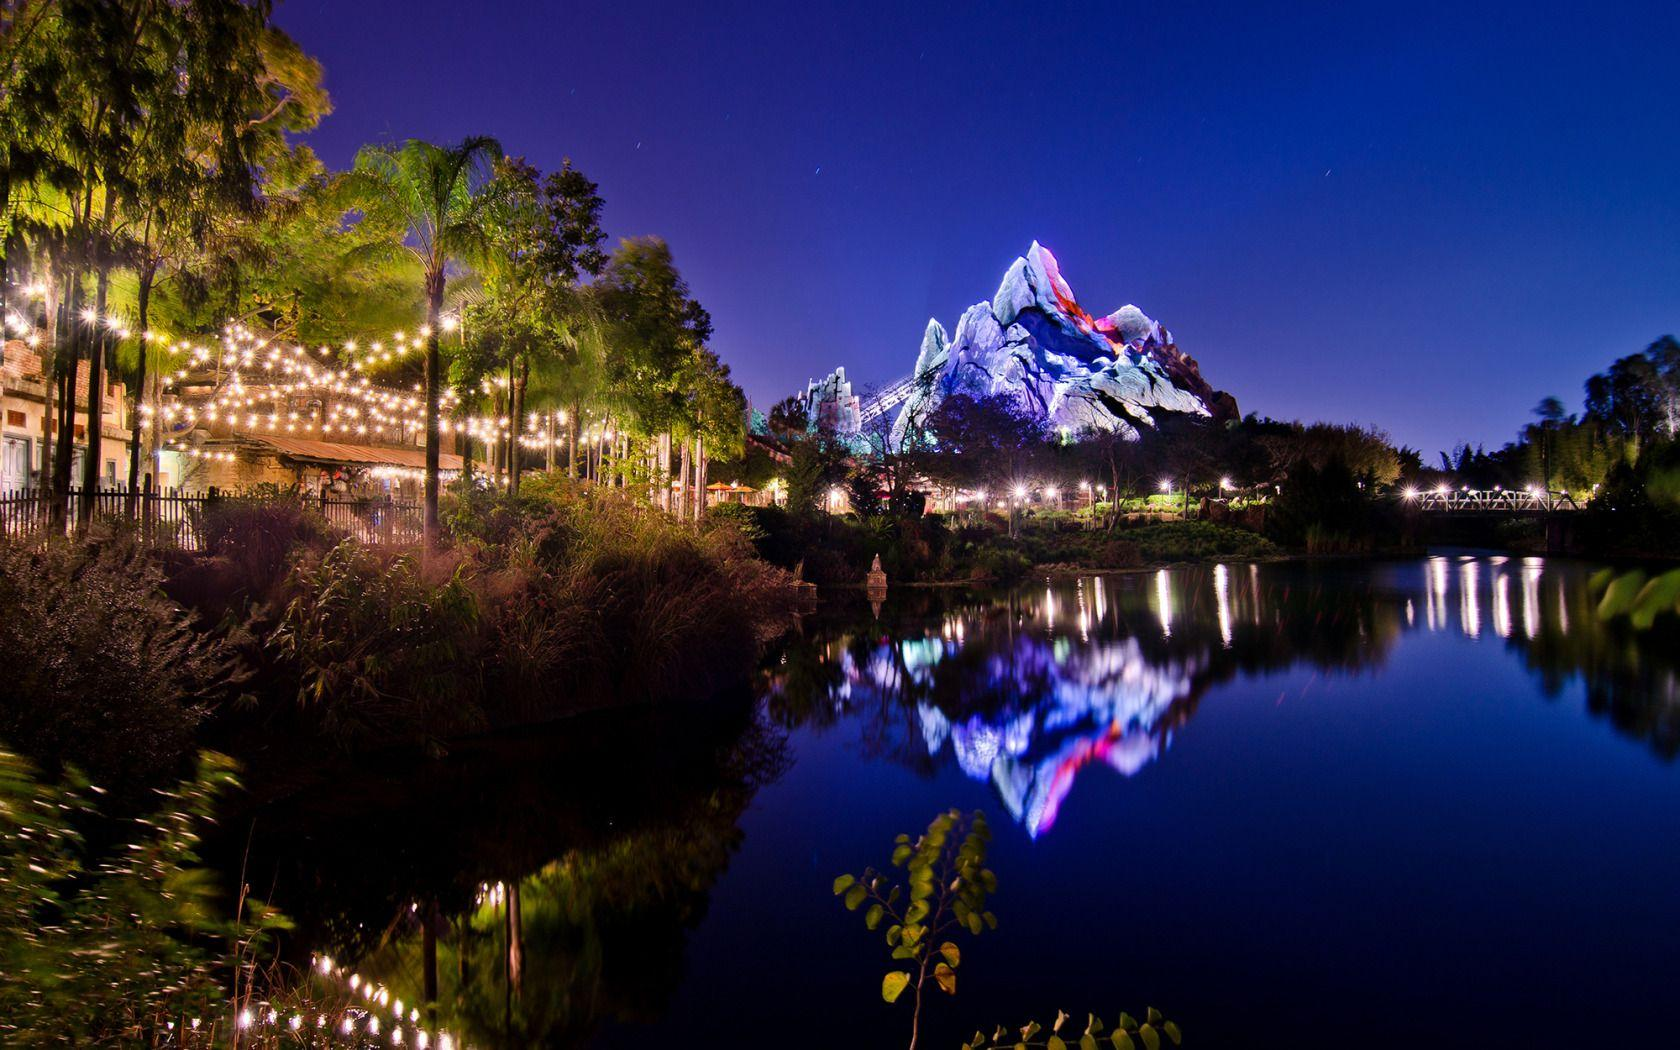 Disney's Animal Kingdom Asia At Night free walt disney world ...